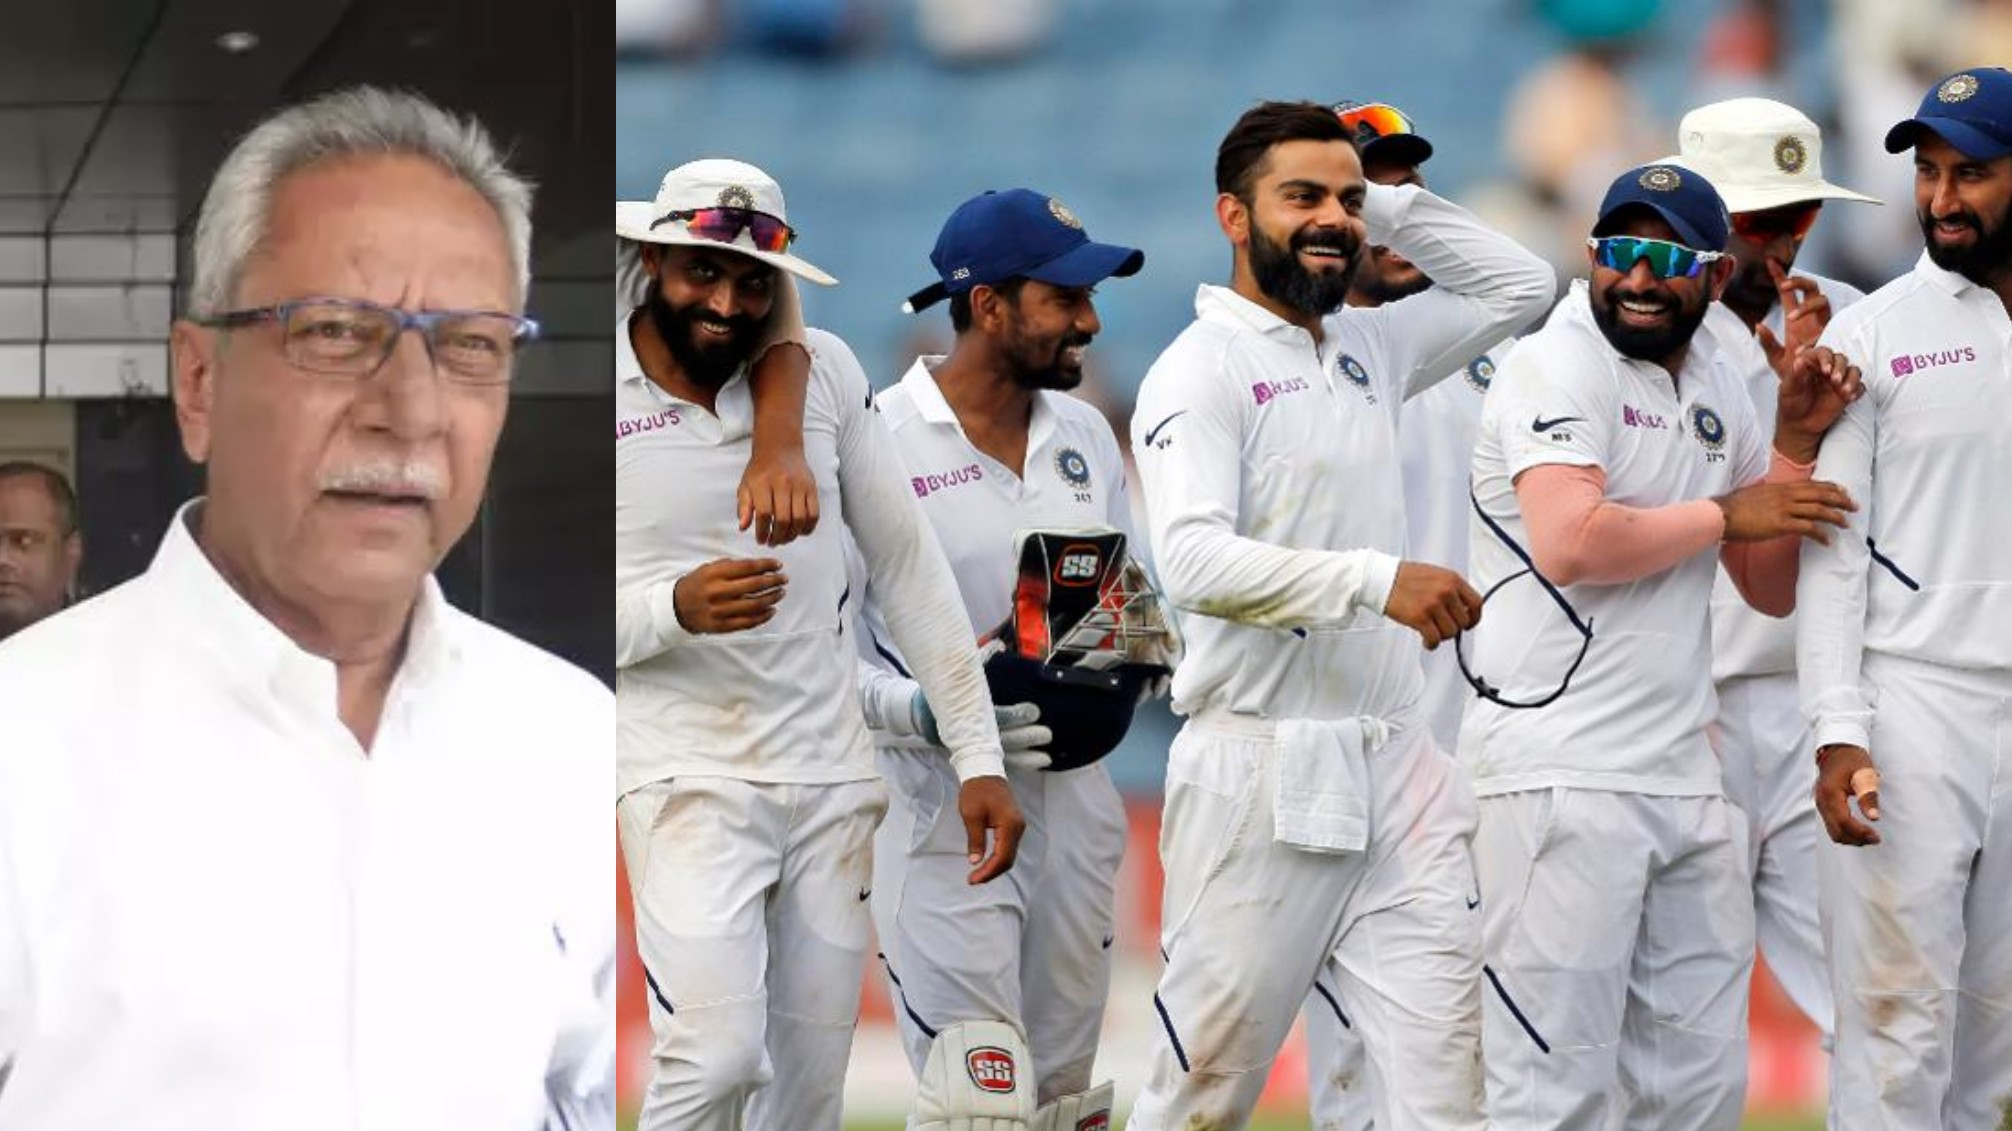 Virat Kohli has the best possible Indian team in history: Anshuman Gaekwad